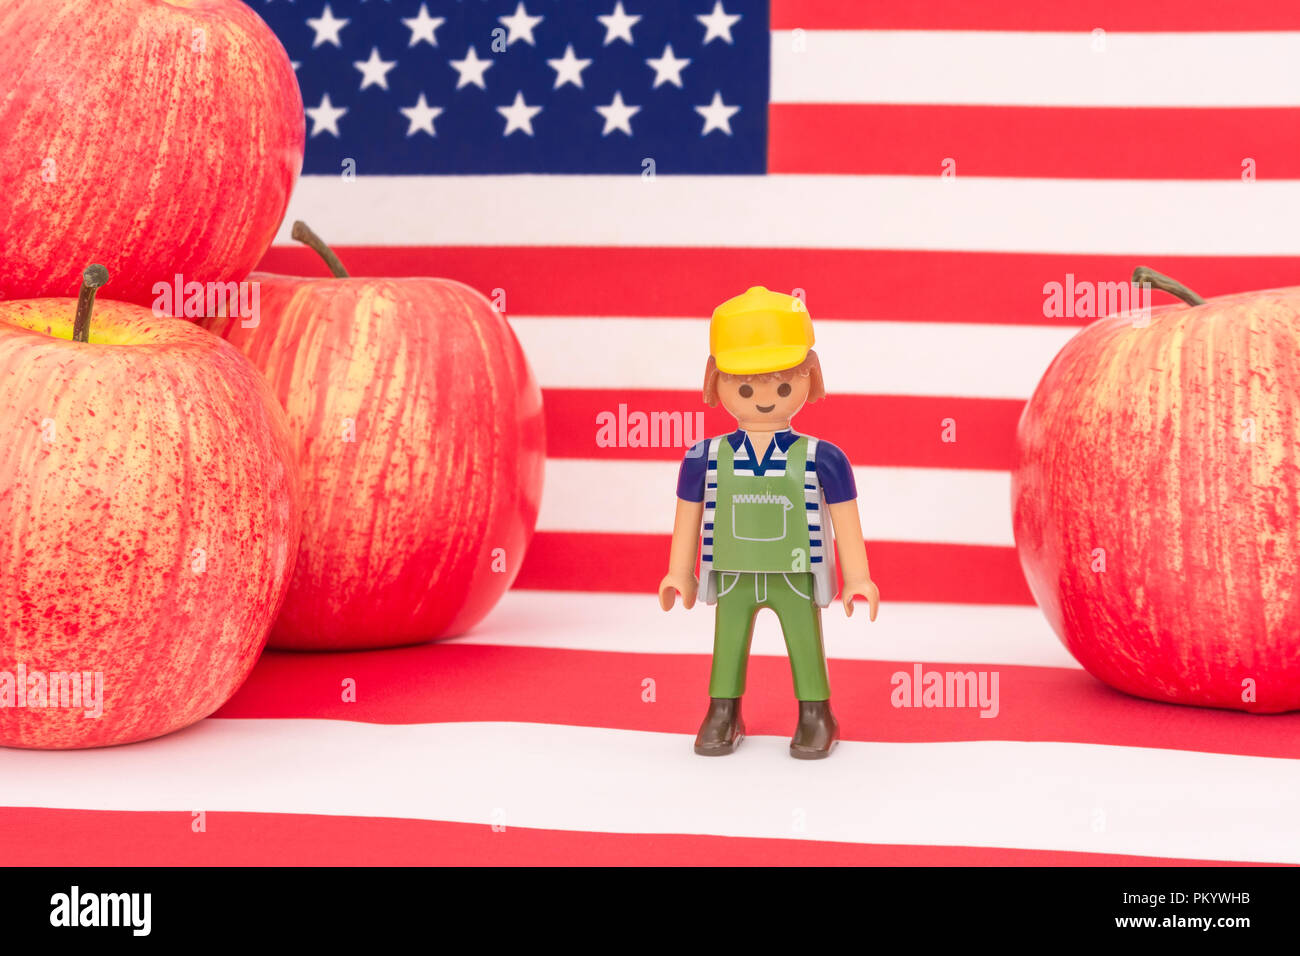 Red apples + US American flag / Stars and Stripes - metaphor US apple industry, Chinese trade tariffs on imports of American apples. Small toy farmer Stock Photo